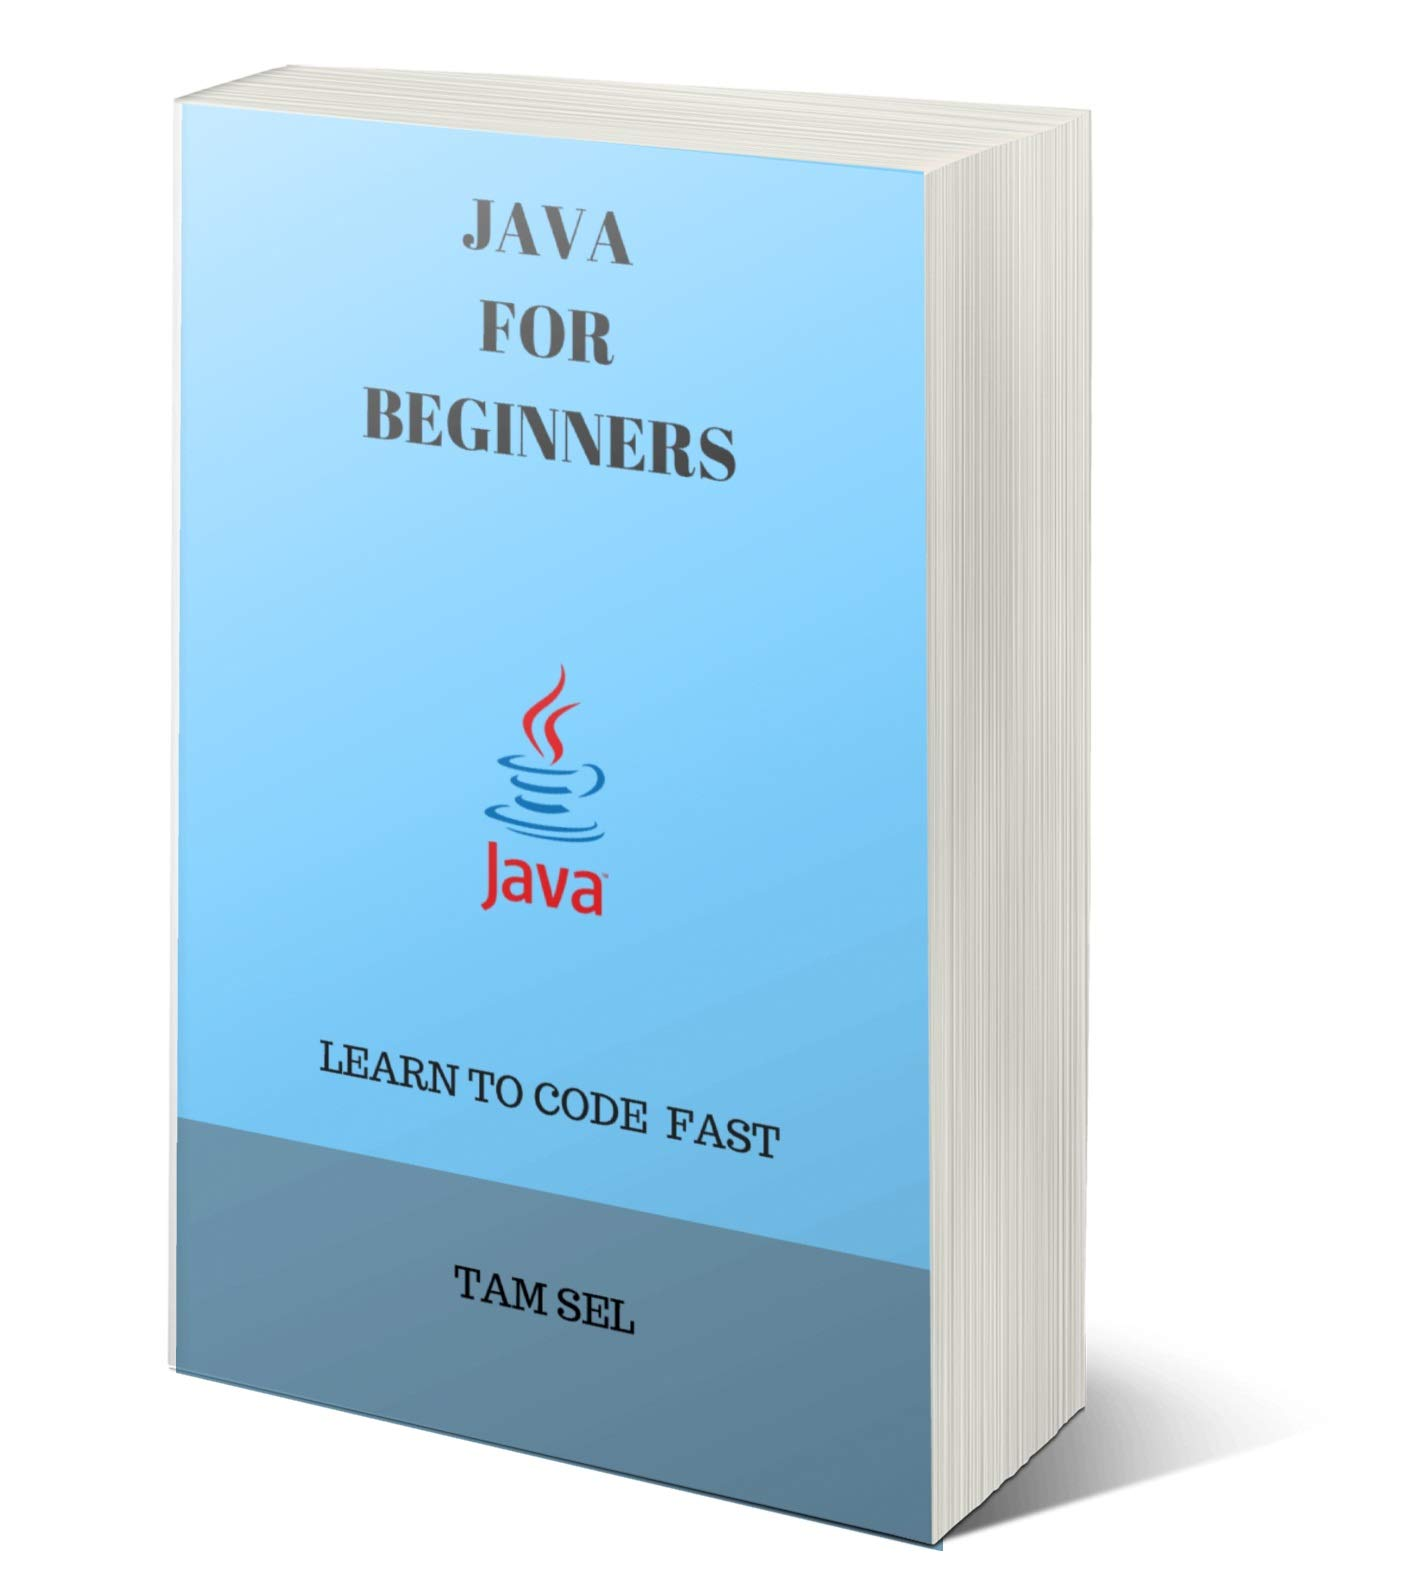 JAVA FOR BEGINNERS  LEARN TO CODE FAST  English Edition